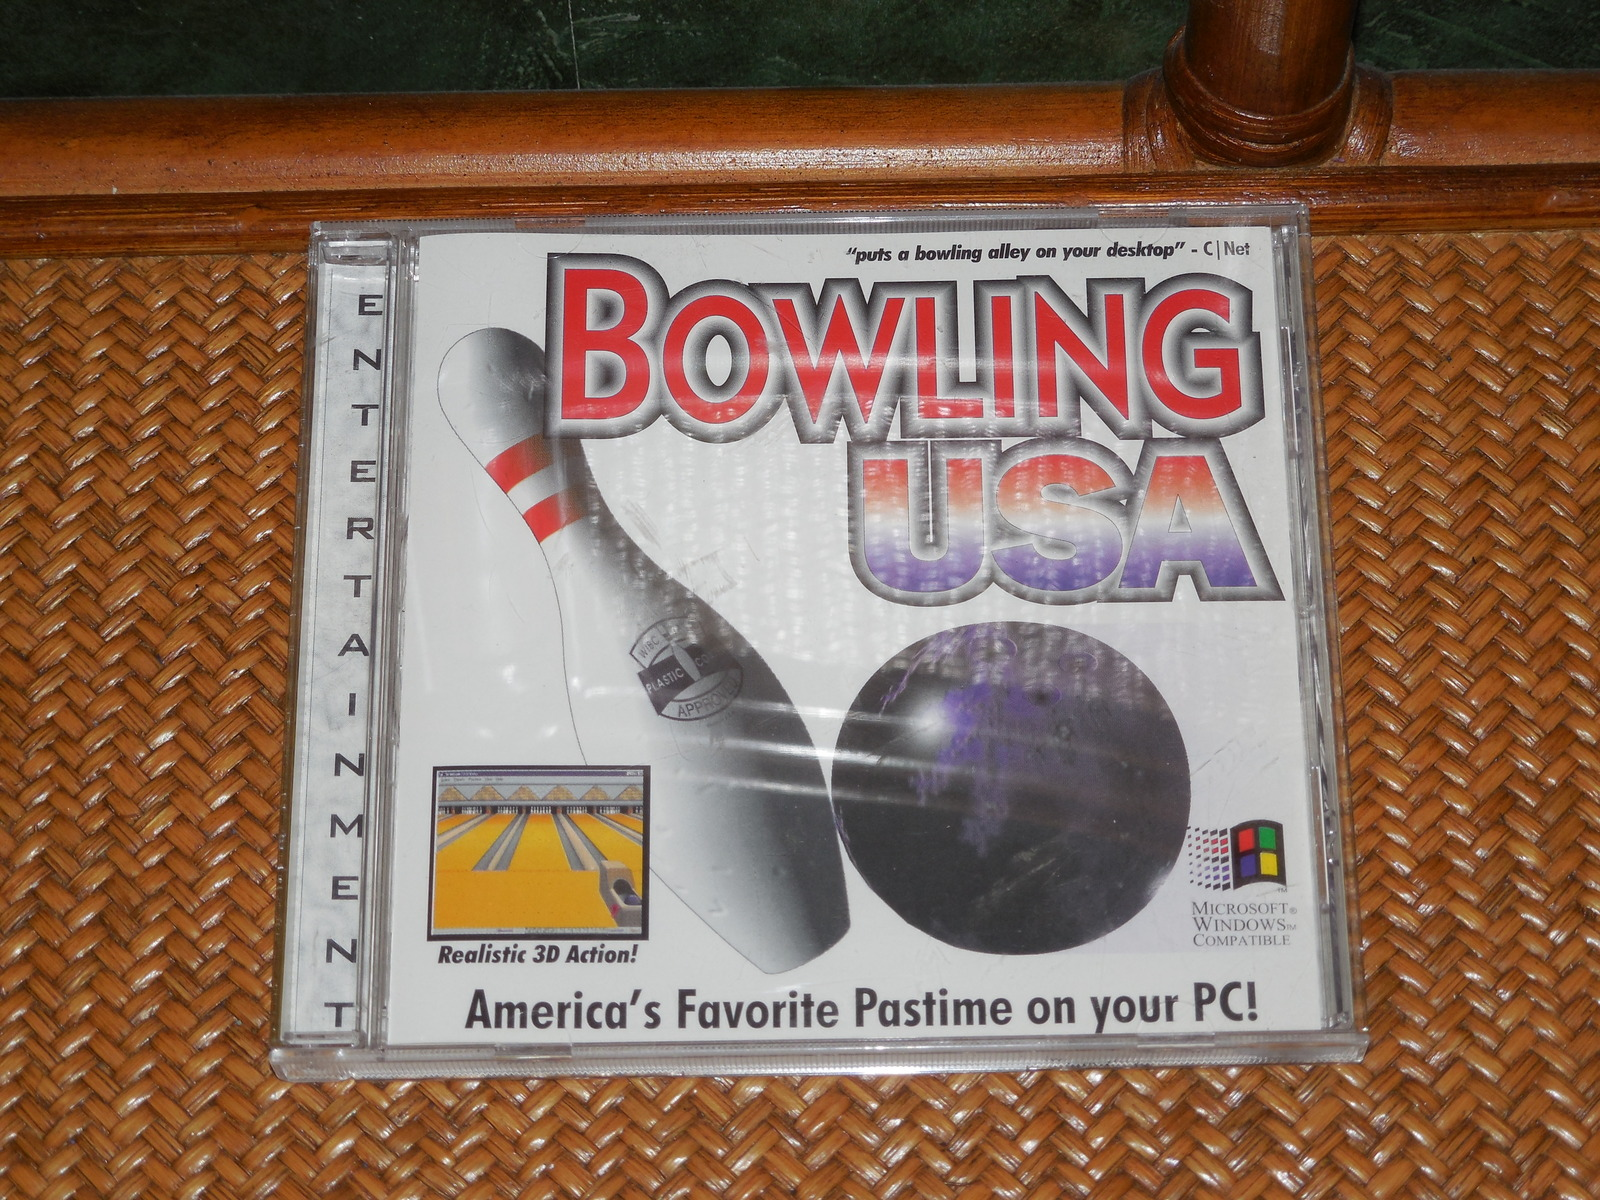 BOWLING USA SOFTWARE CD-ROM WINDOWS SOFTWARE COMPLETE ONLY AS PICTURED USED